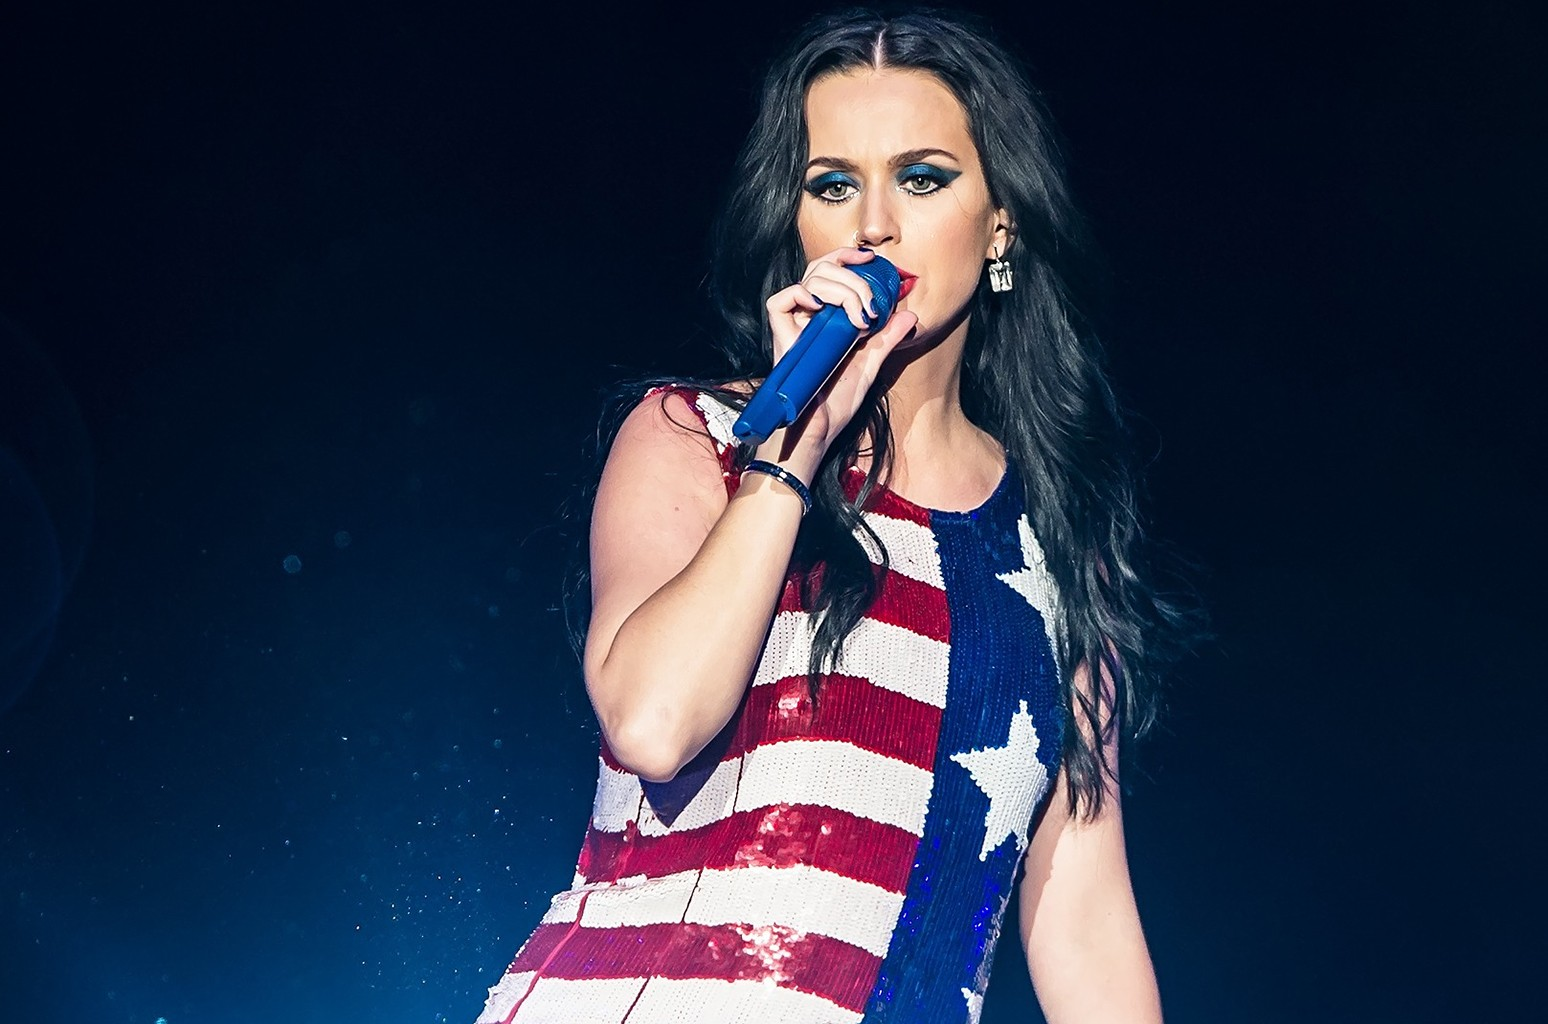 Katy Perry performs in support of Hillary Clinton